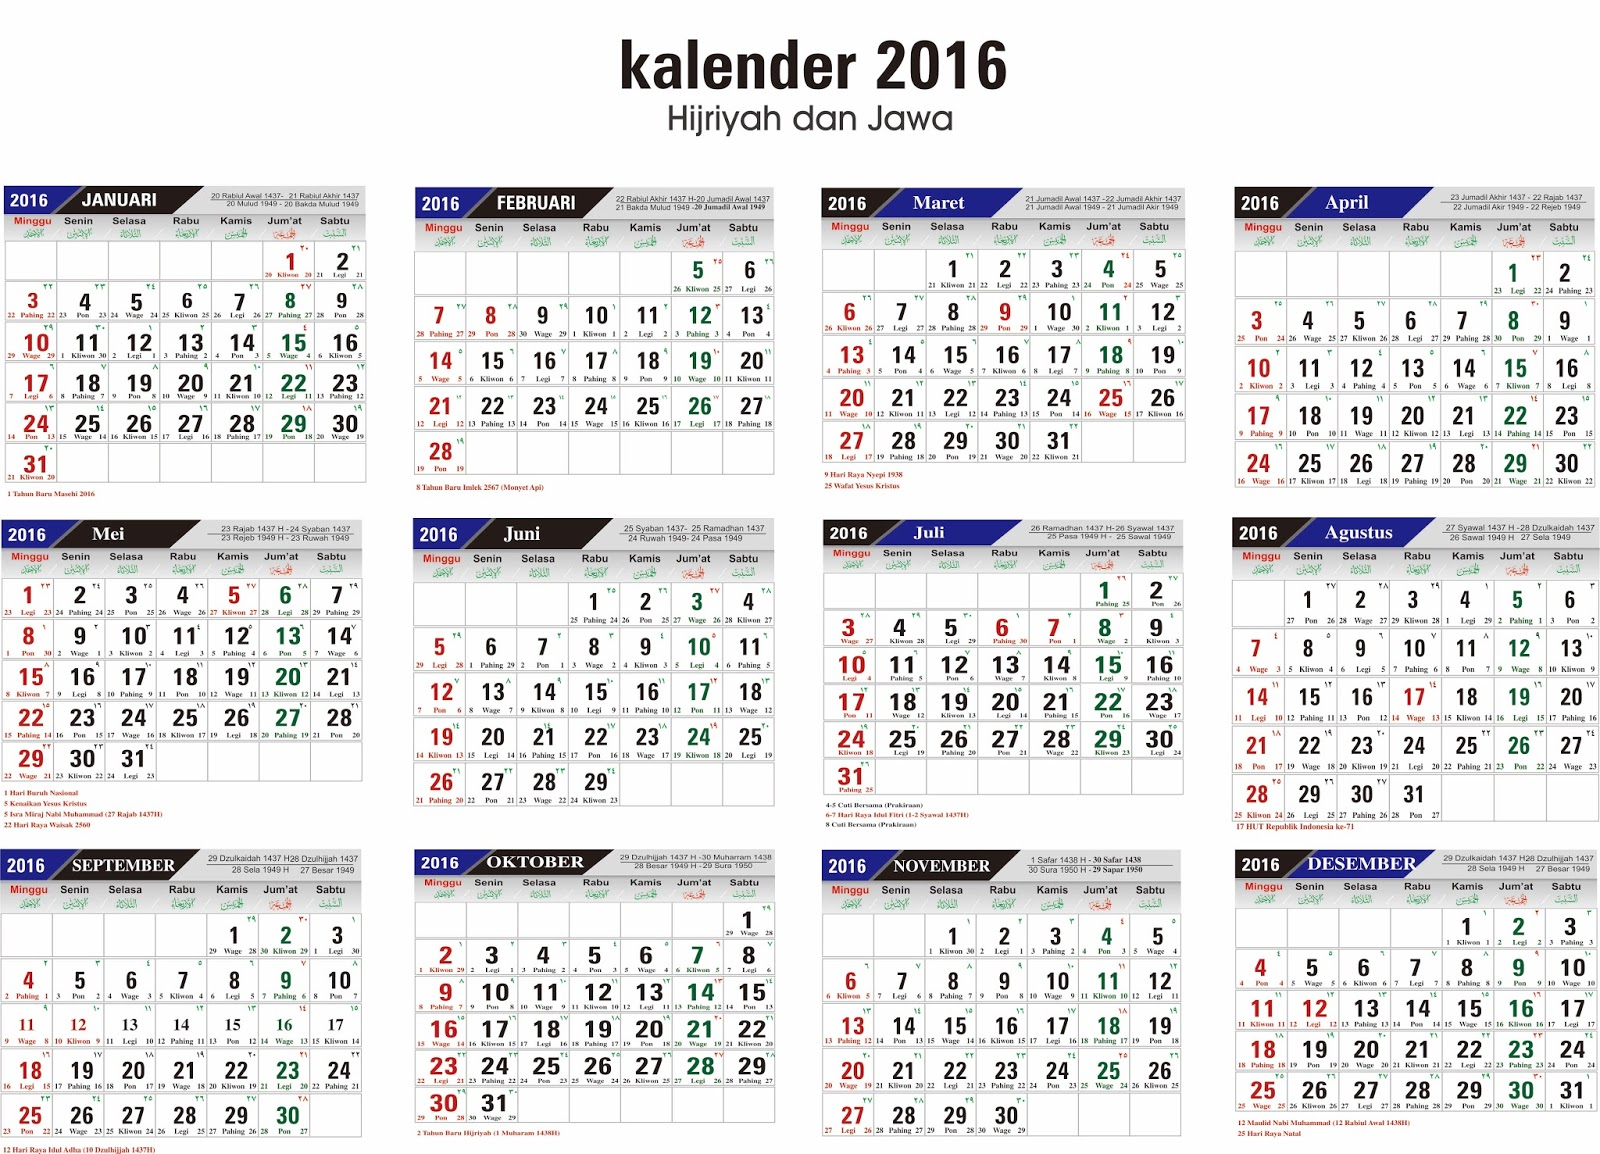 kalender 2016 lengkap terbarutau. Black Bedroom Furniture Sets. Home Design Ideas